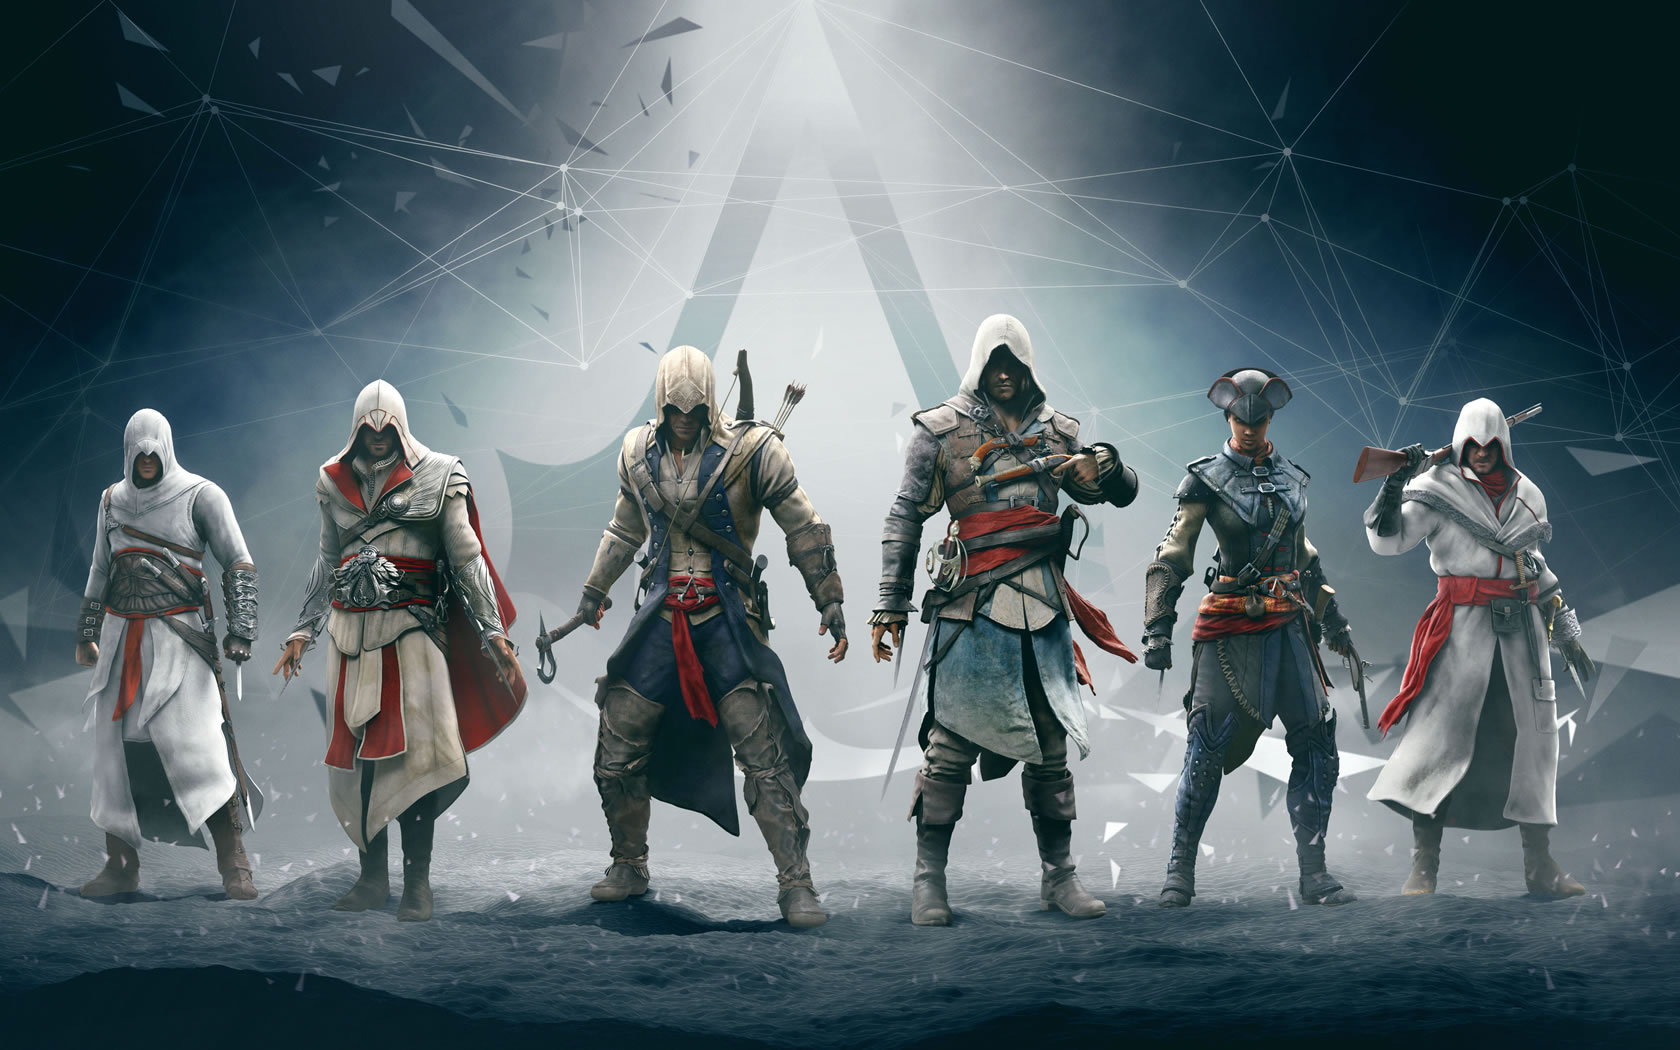 Assassin's Creed. ¿Realidad o ficción? ¡Chan Channnnnnnn!